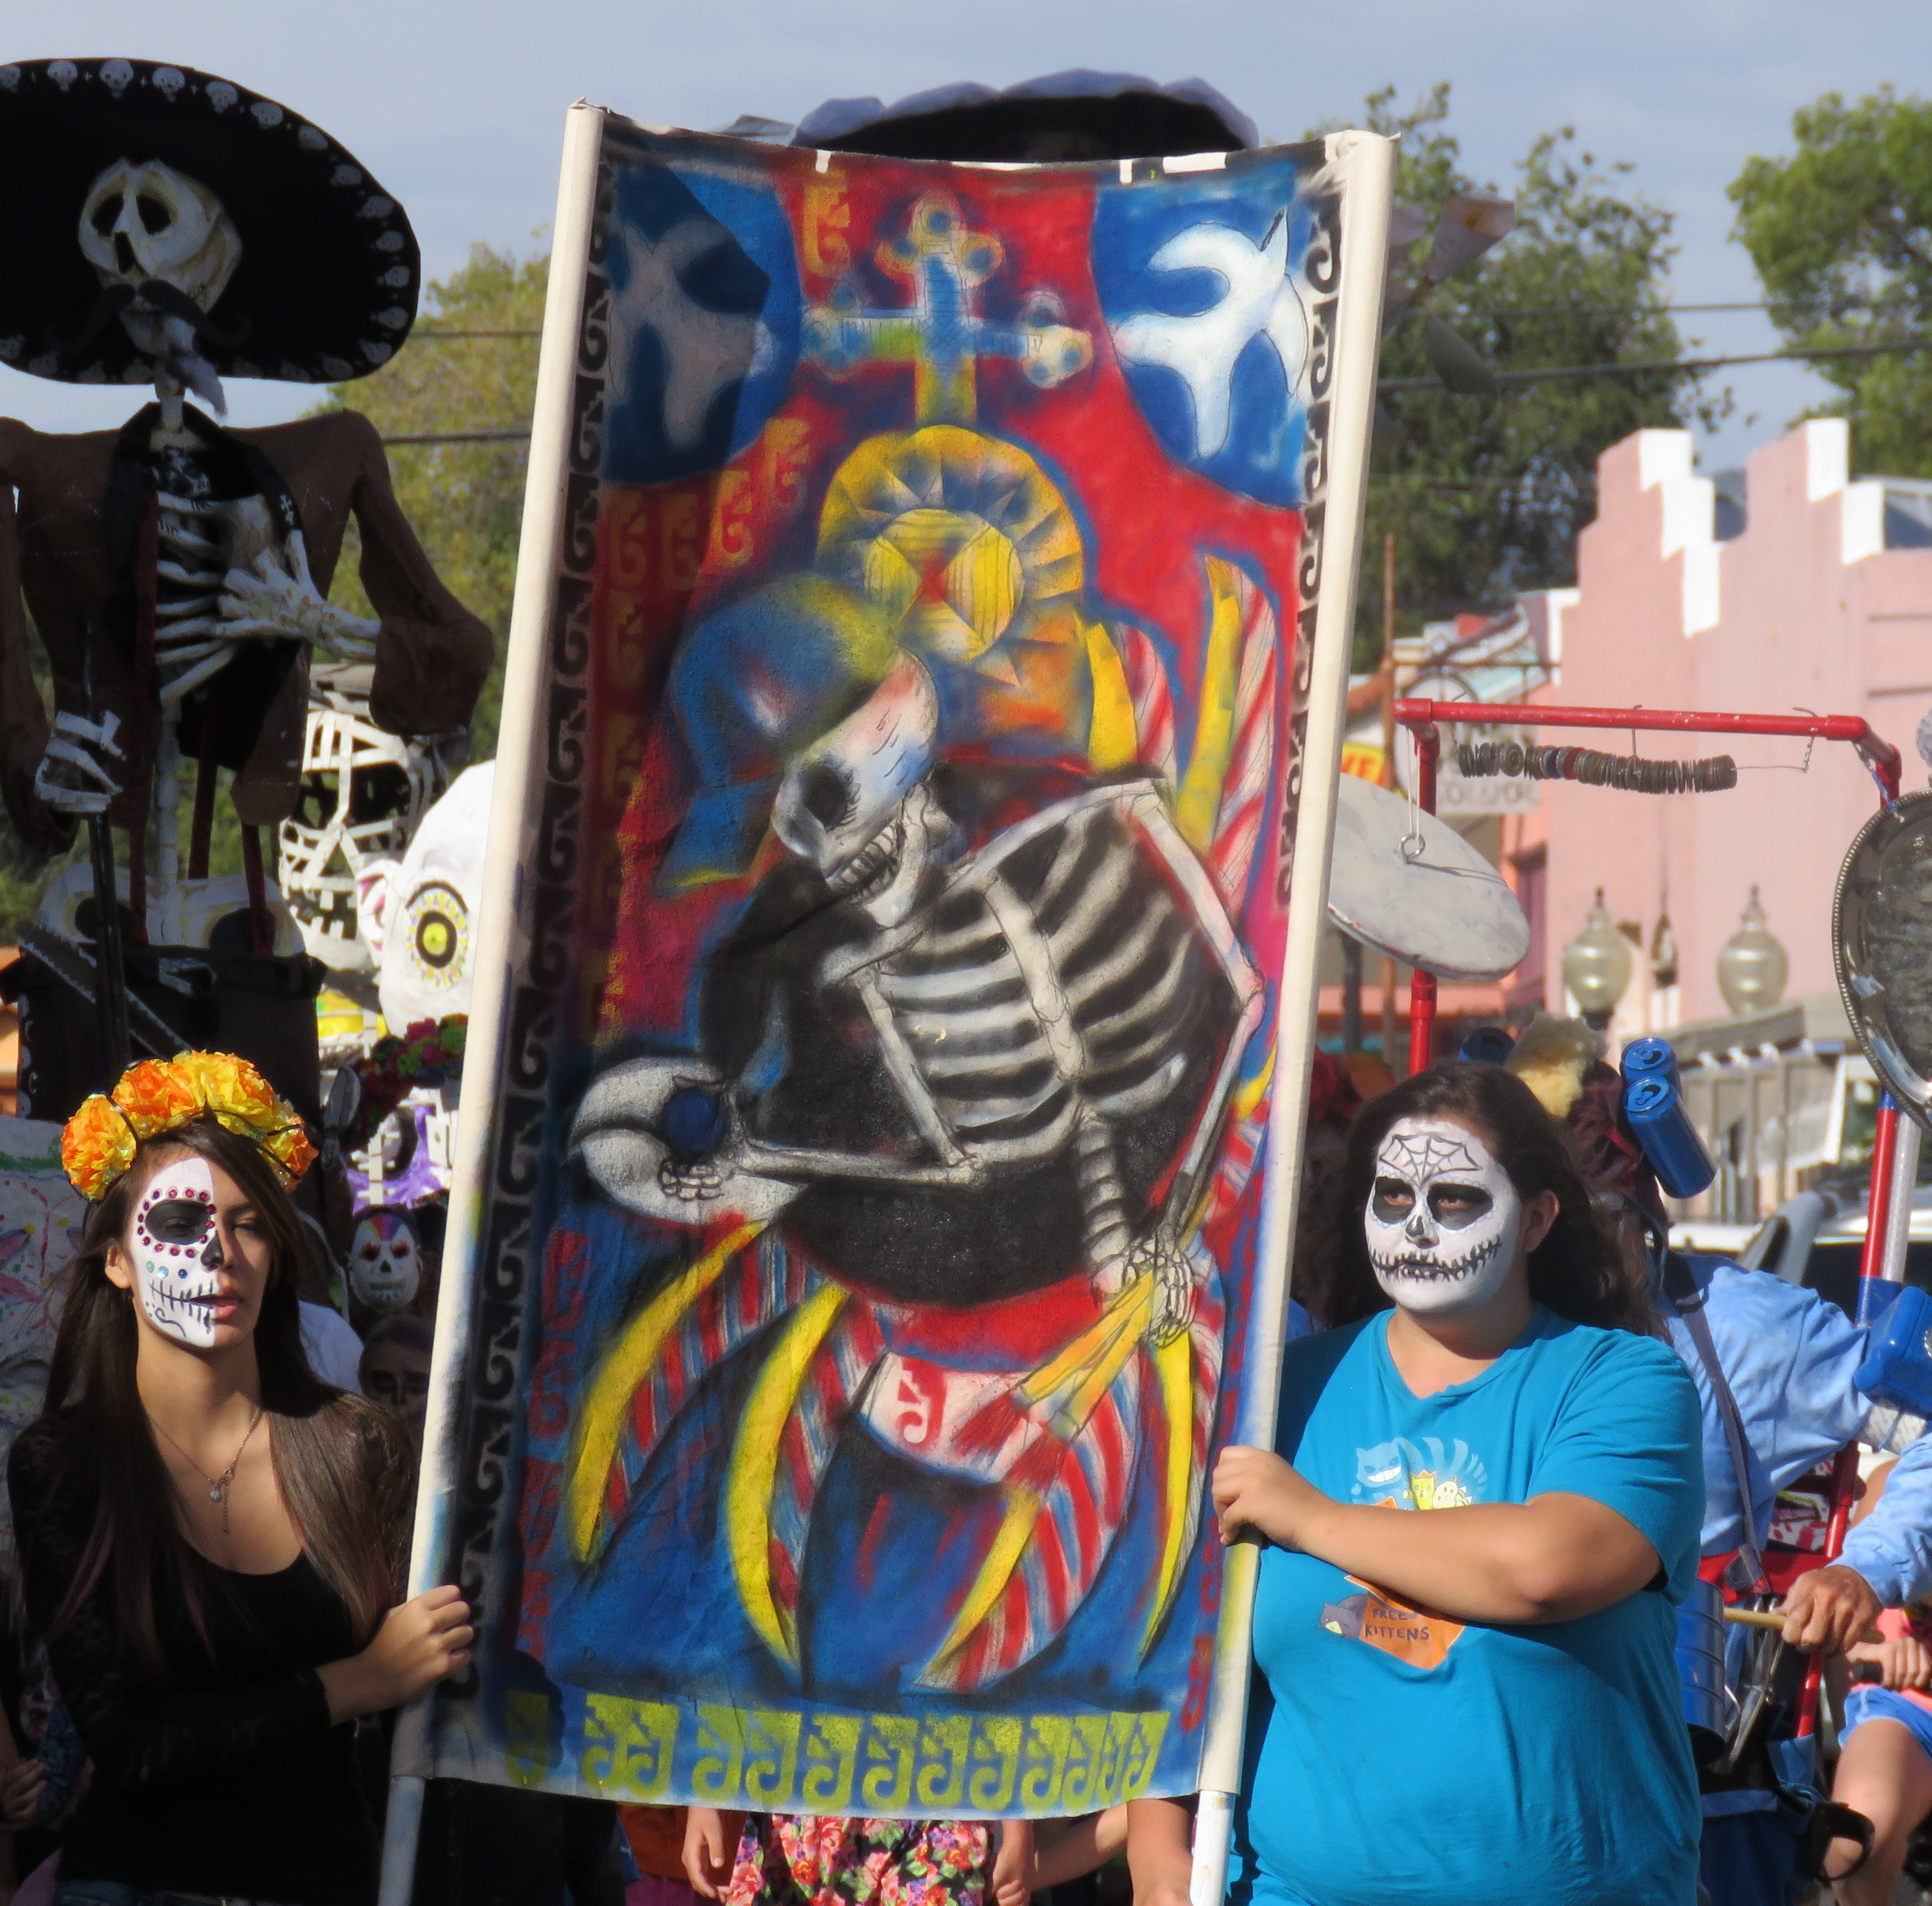 Silver City prepares for Dia de los Muertos celebration